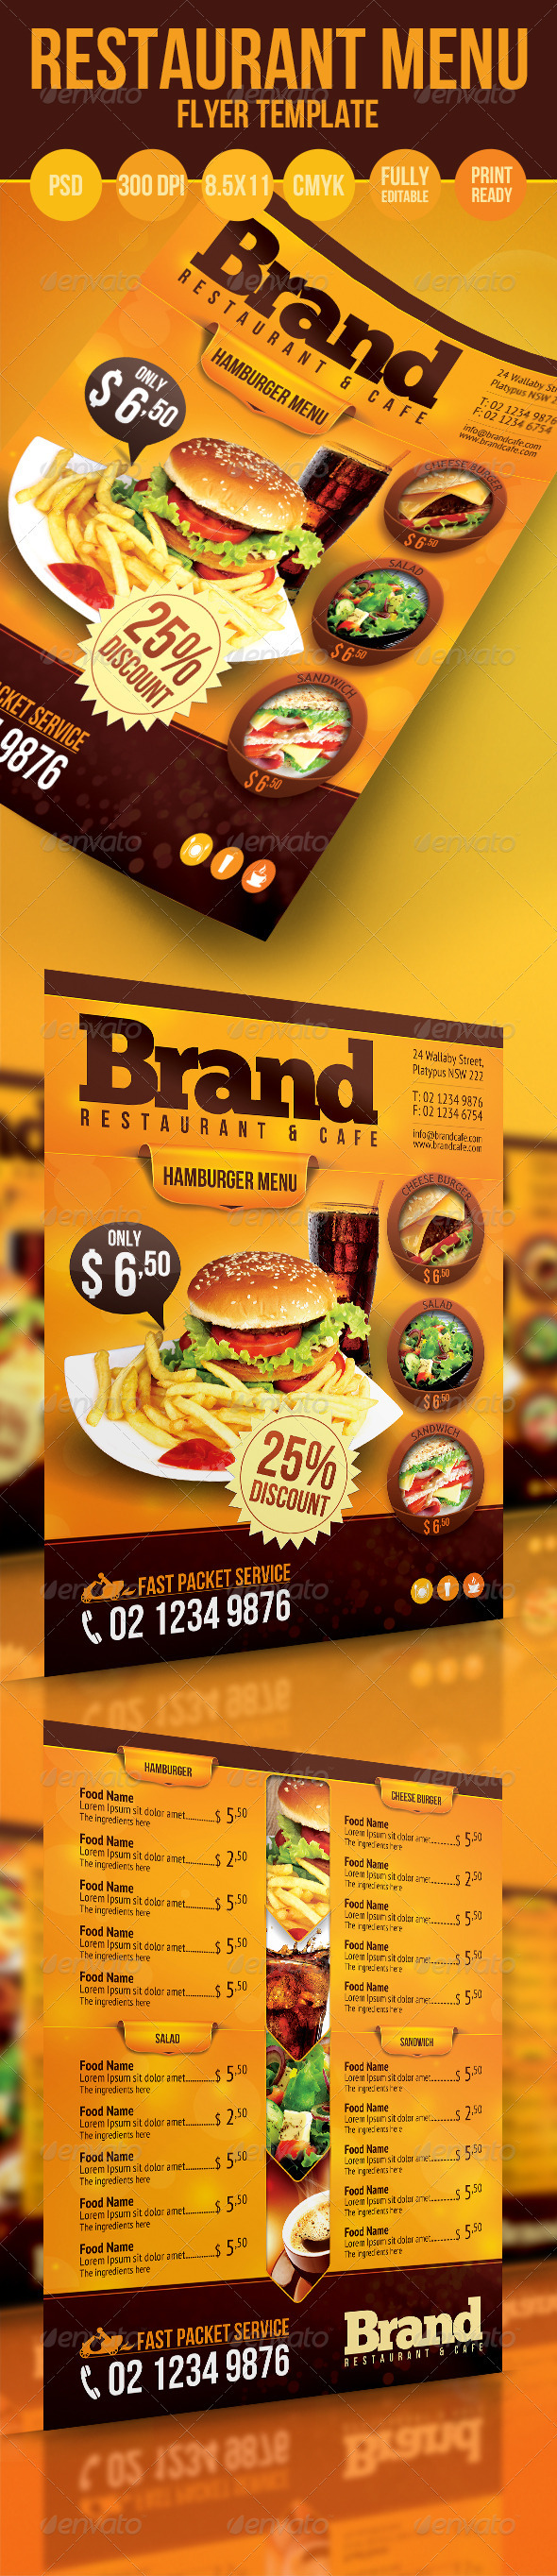 GraphicRiver Restaurant Menu Flyer 3270438